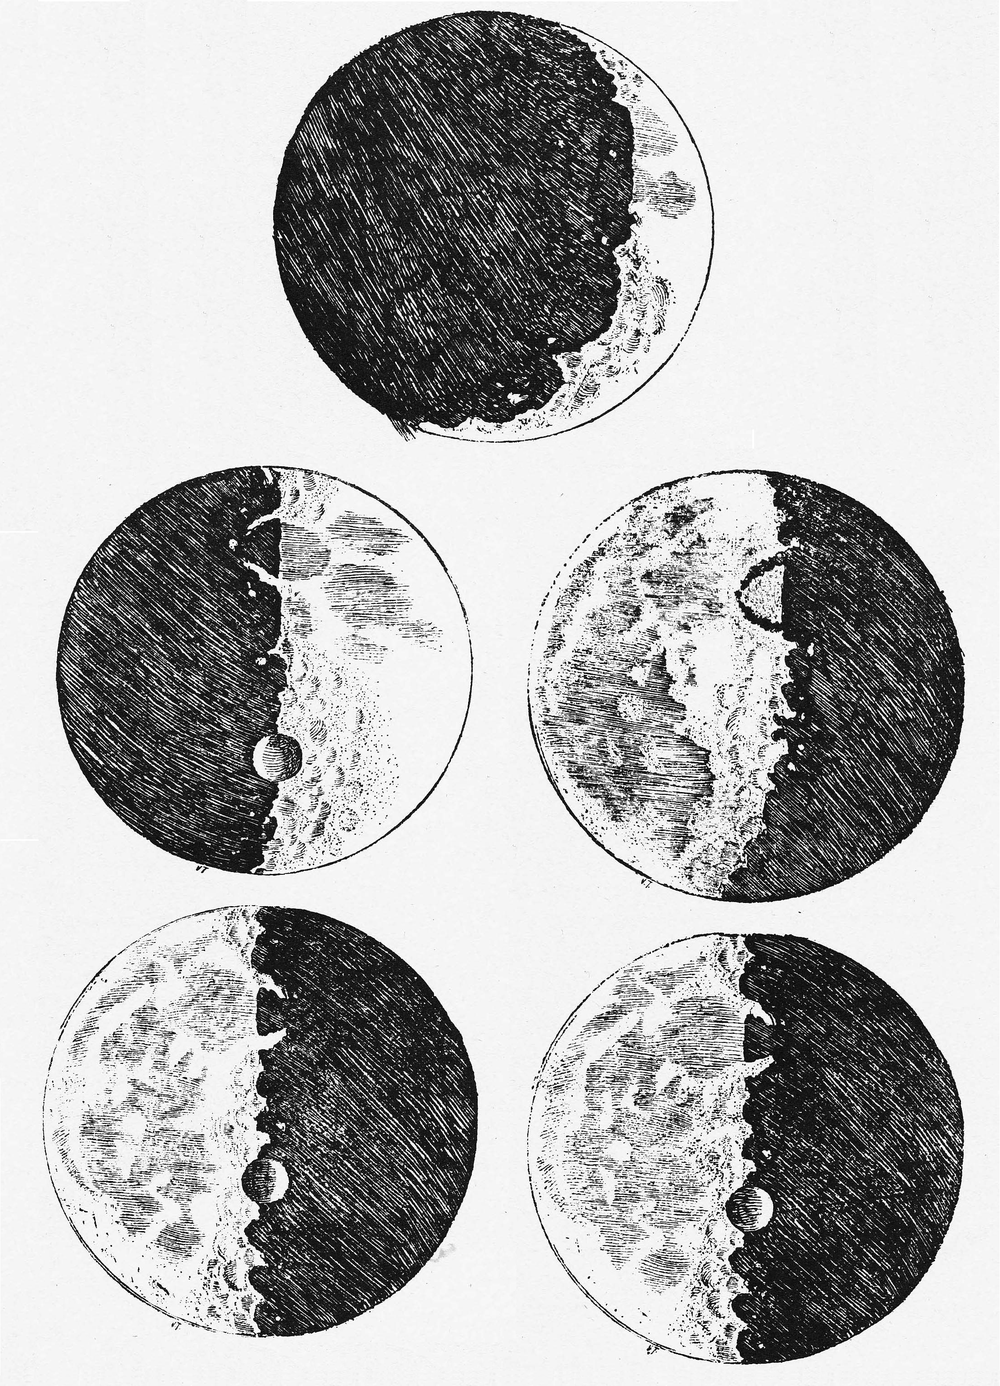 Galileo's sketches of the moon, 1610. - Image Credit: Wikimedia Commons (Click on image to enlarge)